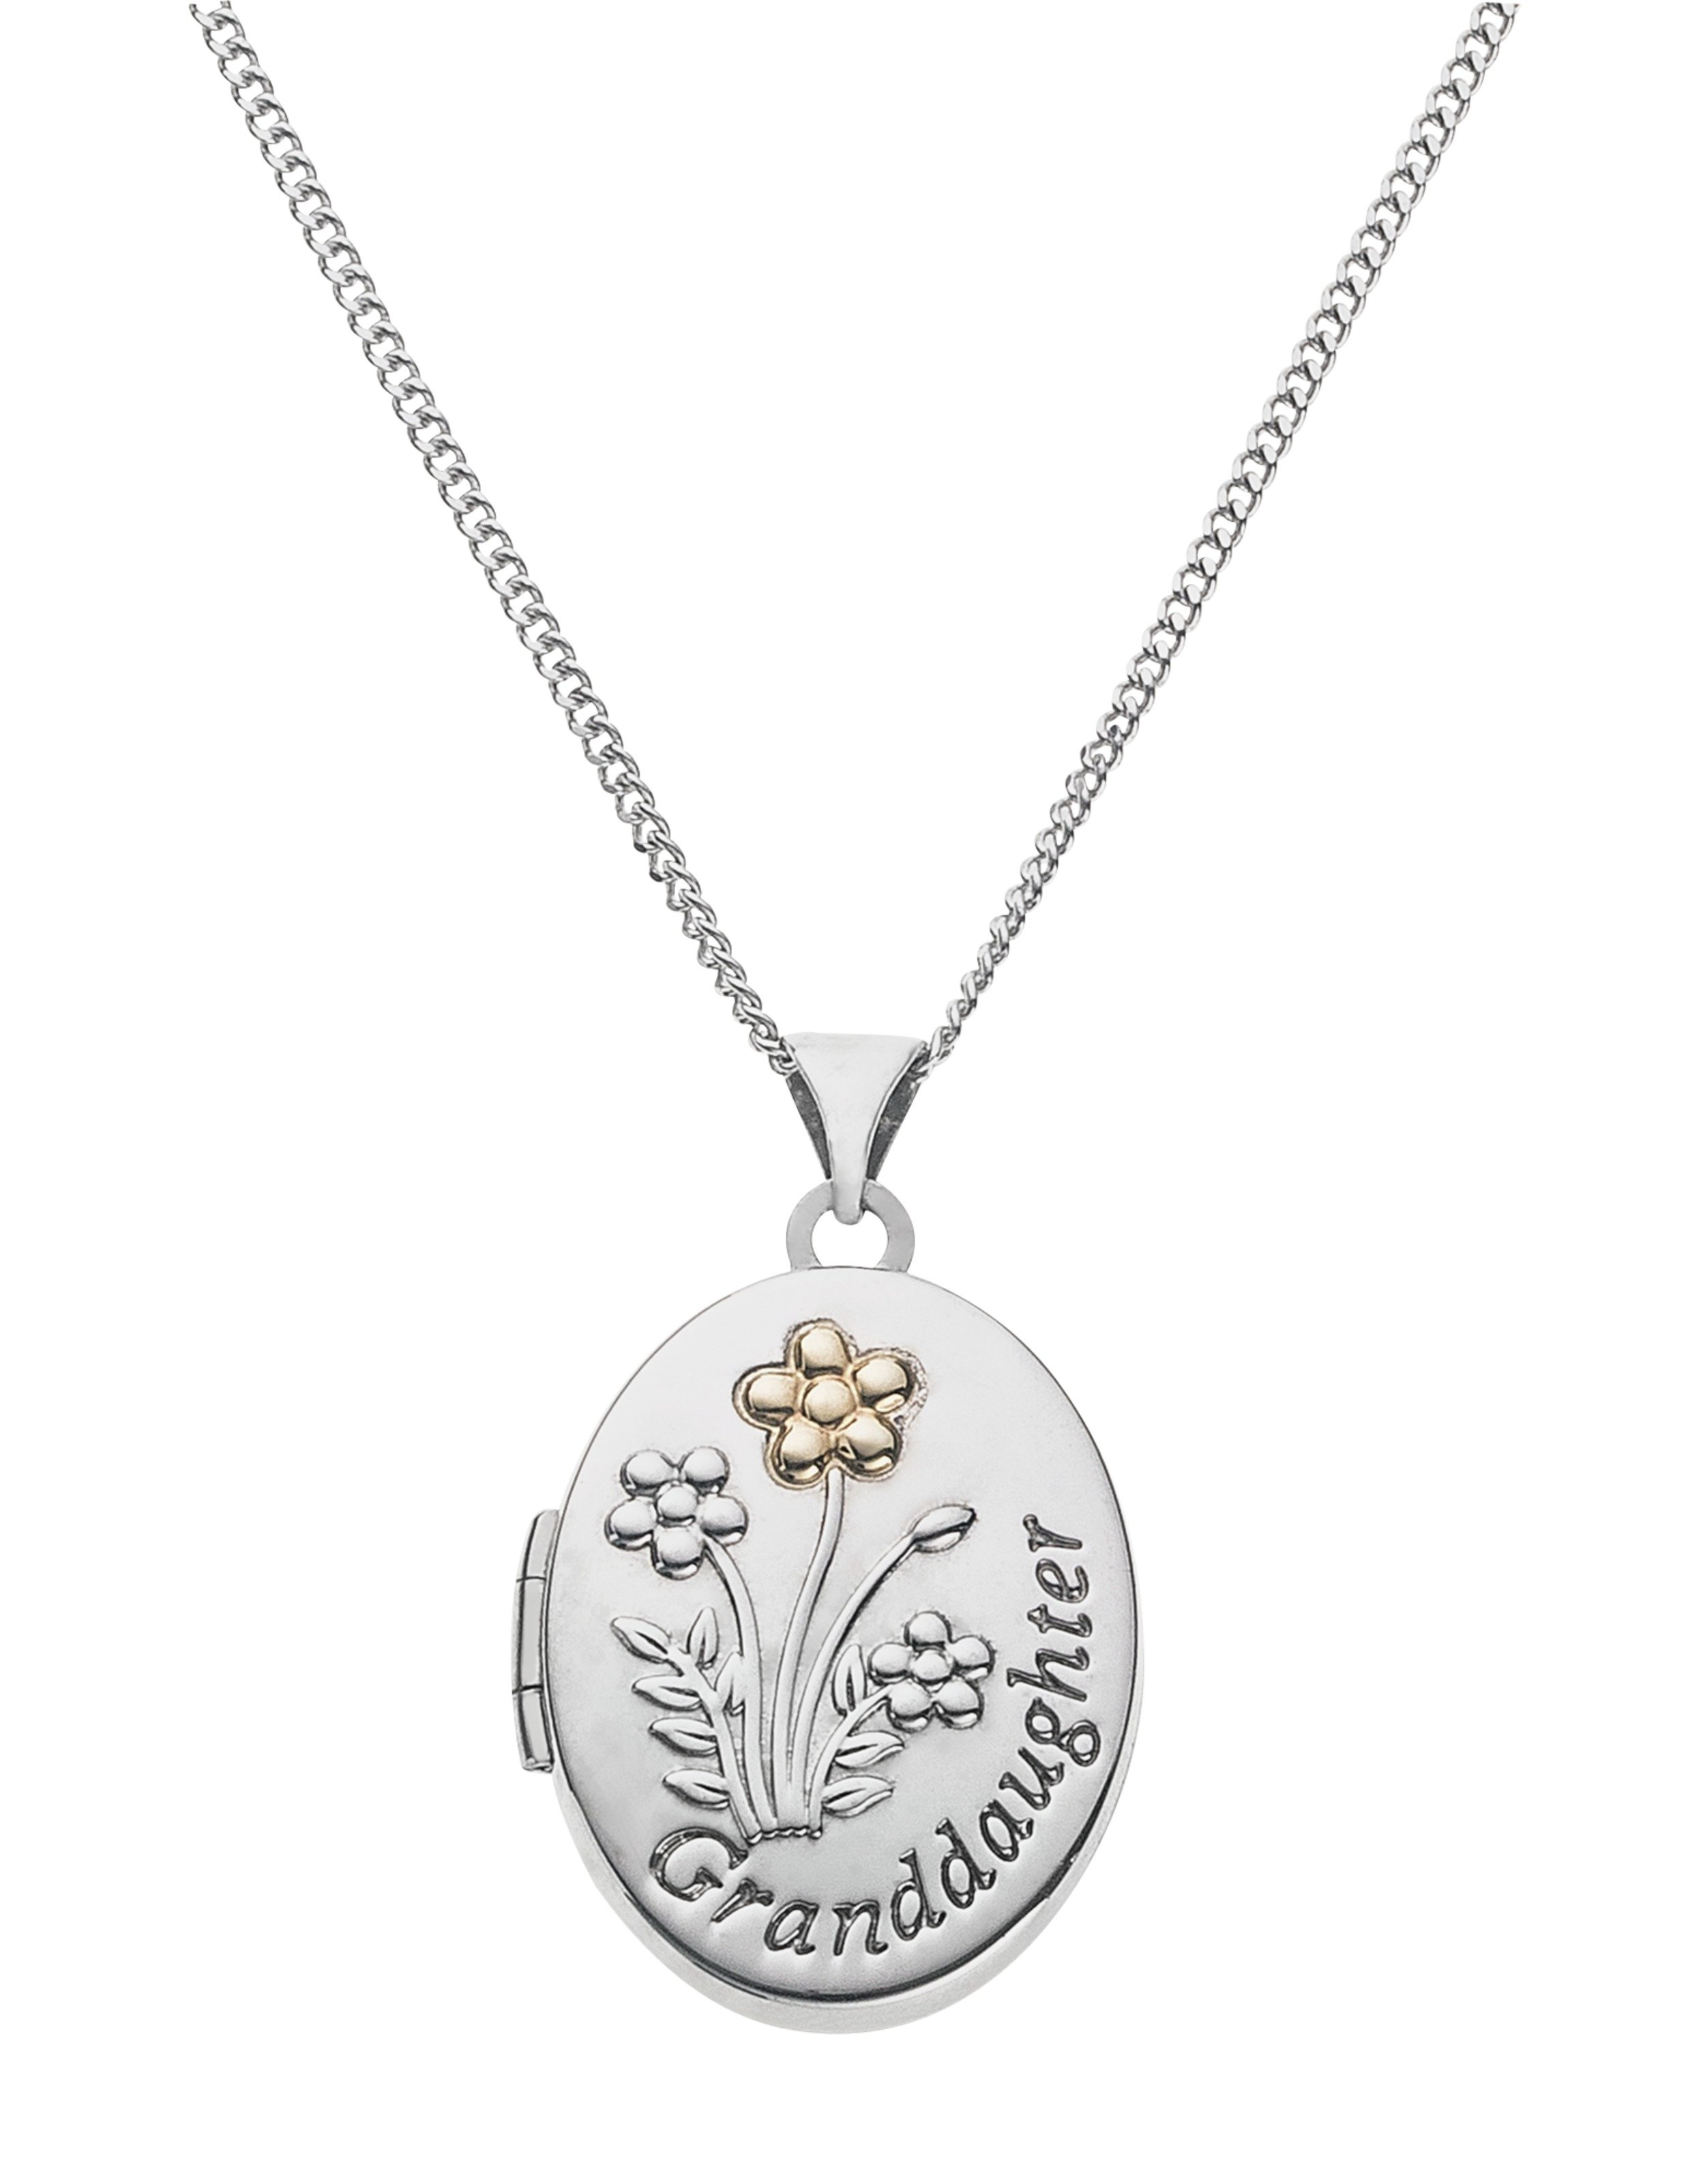 9 Carat Gold - and Silver 'Granddaughter' Locket Pendant.